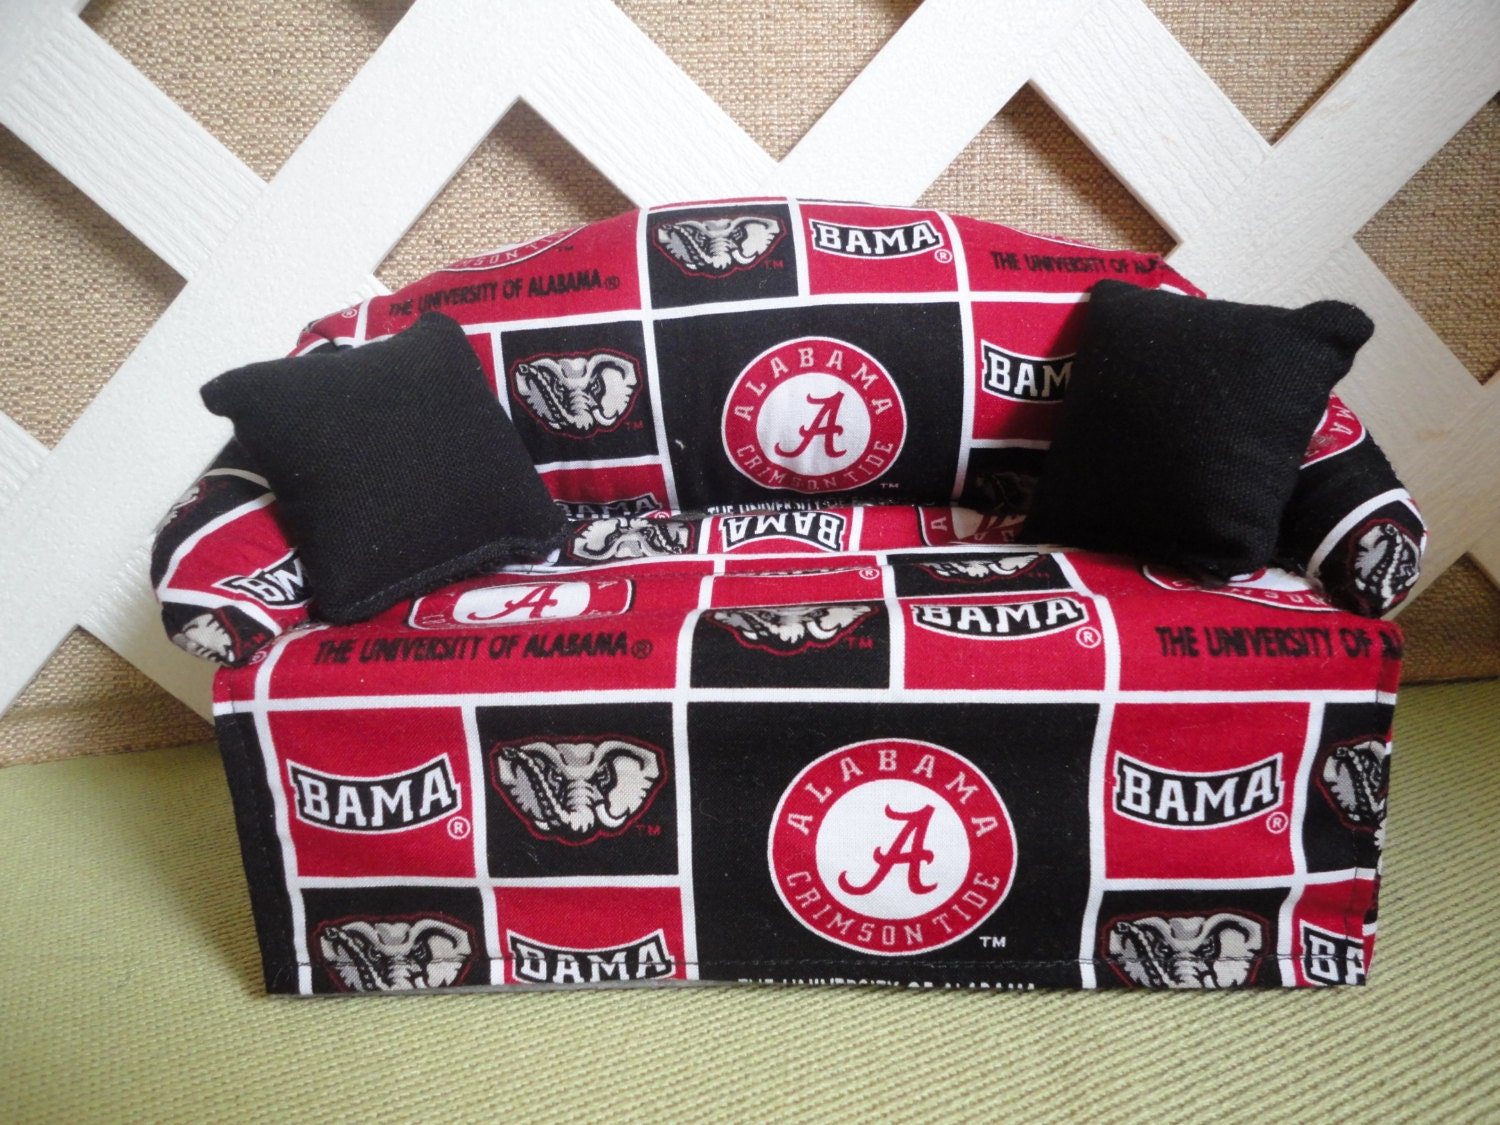 Alabama Crimson Tide Tissue Box Cover In Sofa Shape Red And